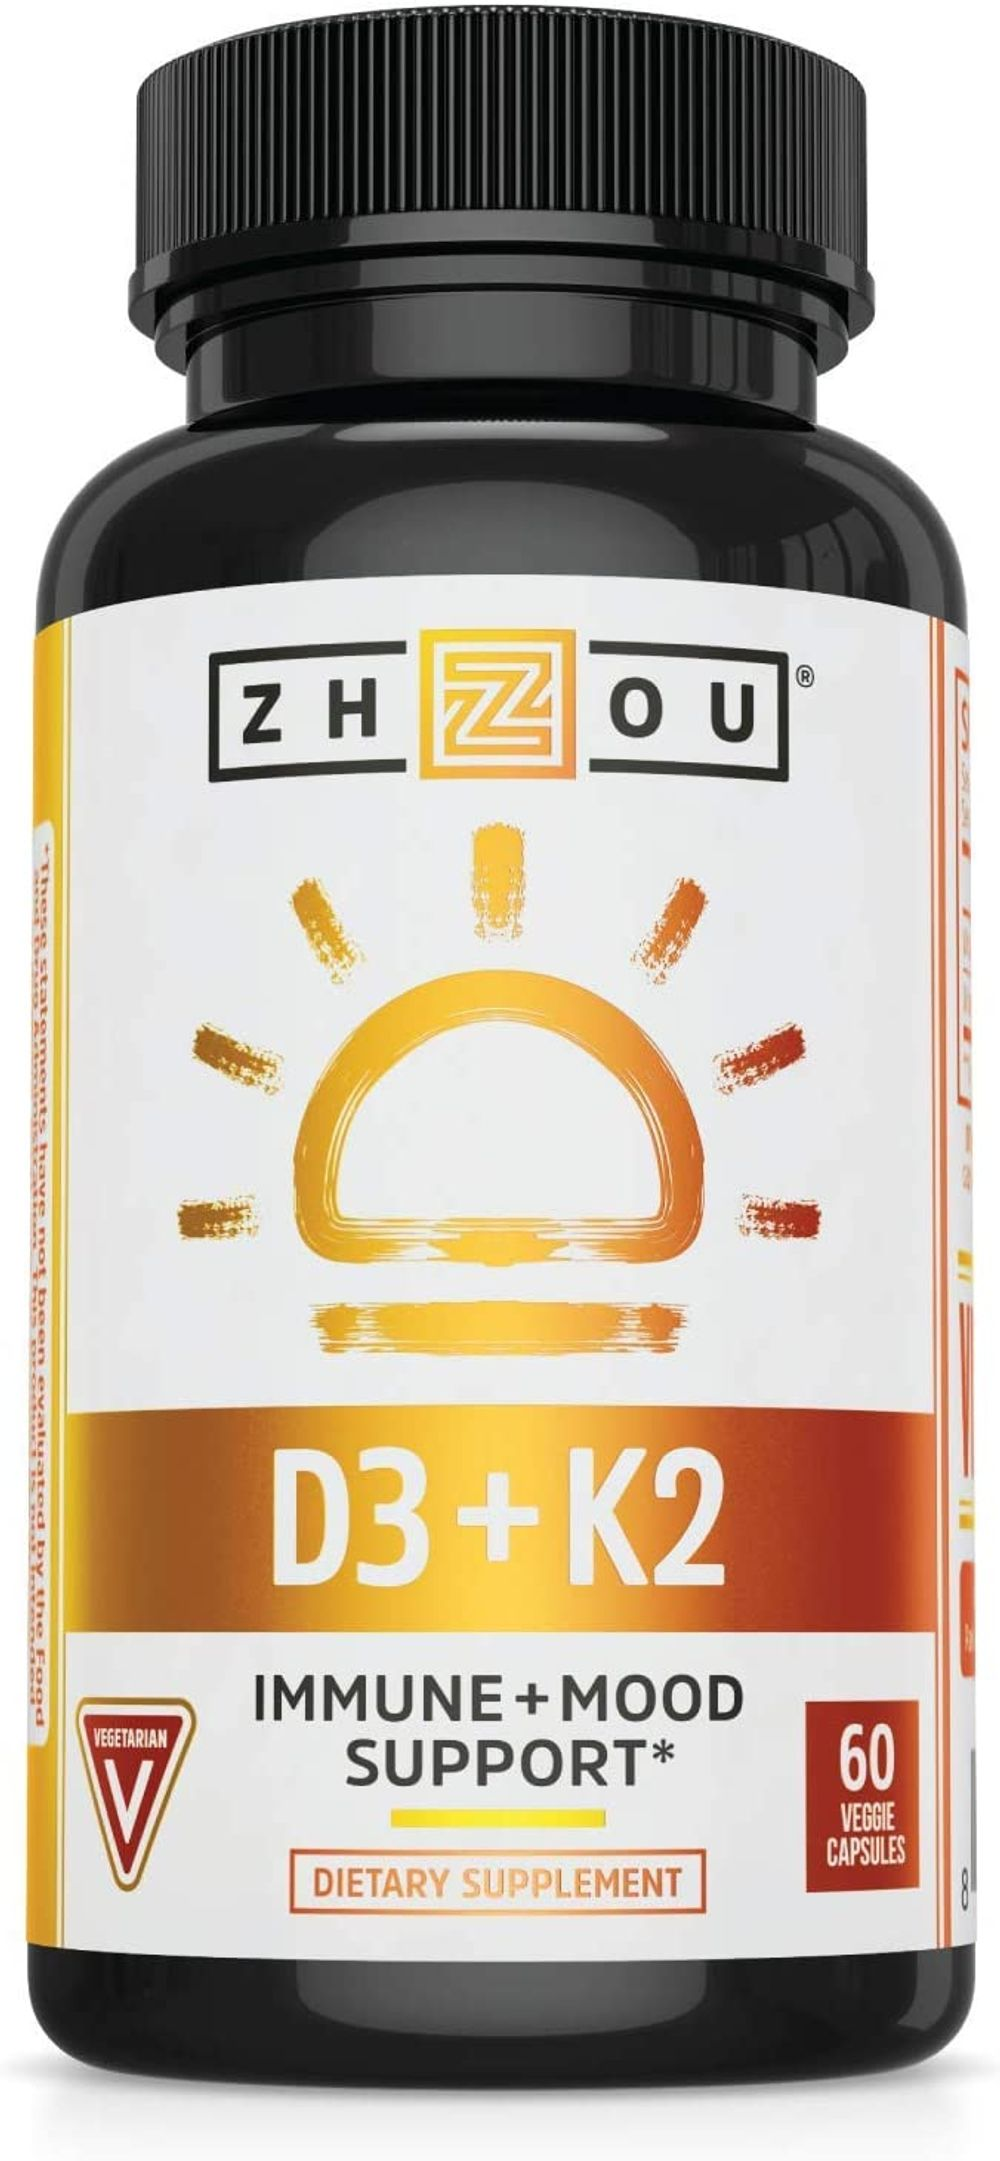 Zhou Nutrition Vitamin D3 K2, Bone and Heart Health Formula Immune Support Vegetable Capsules, 60 Count